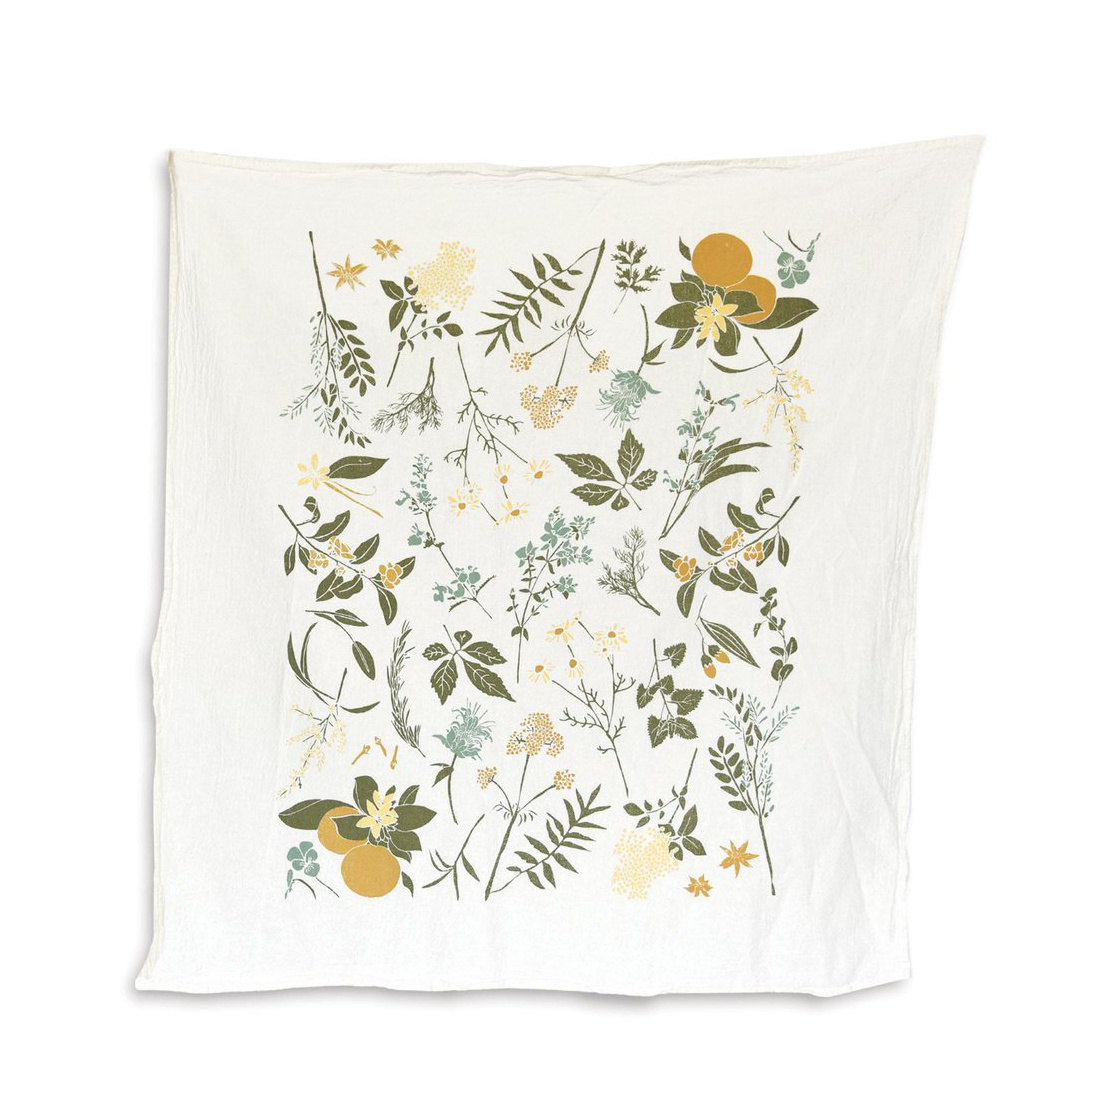 June and December - JD Herbal Tea Garden Towel